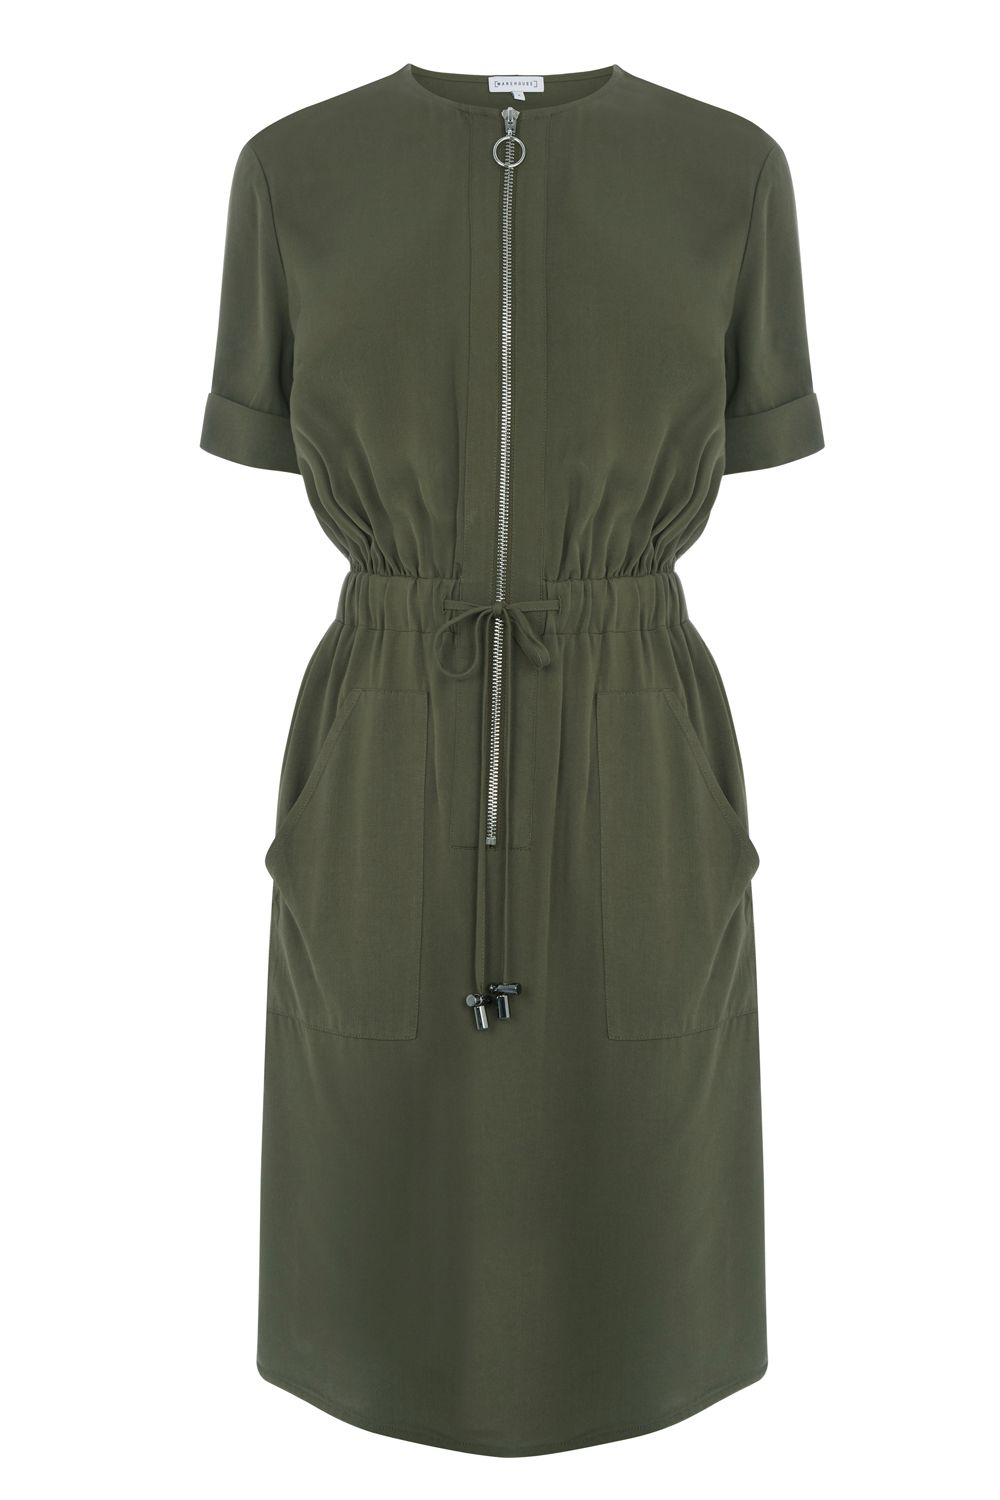 Warehouse Casual Utility Dress, Khaki